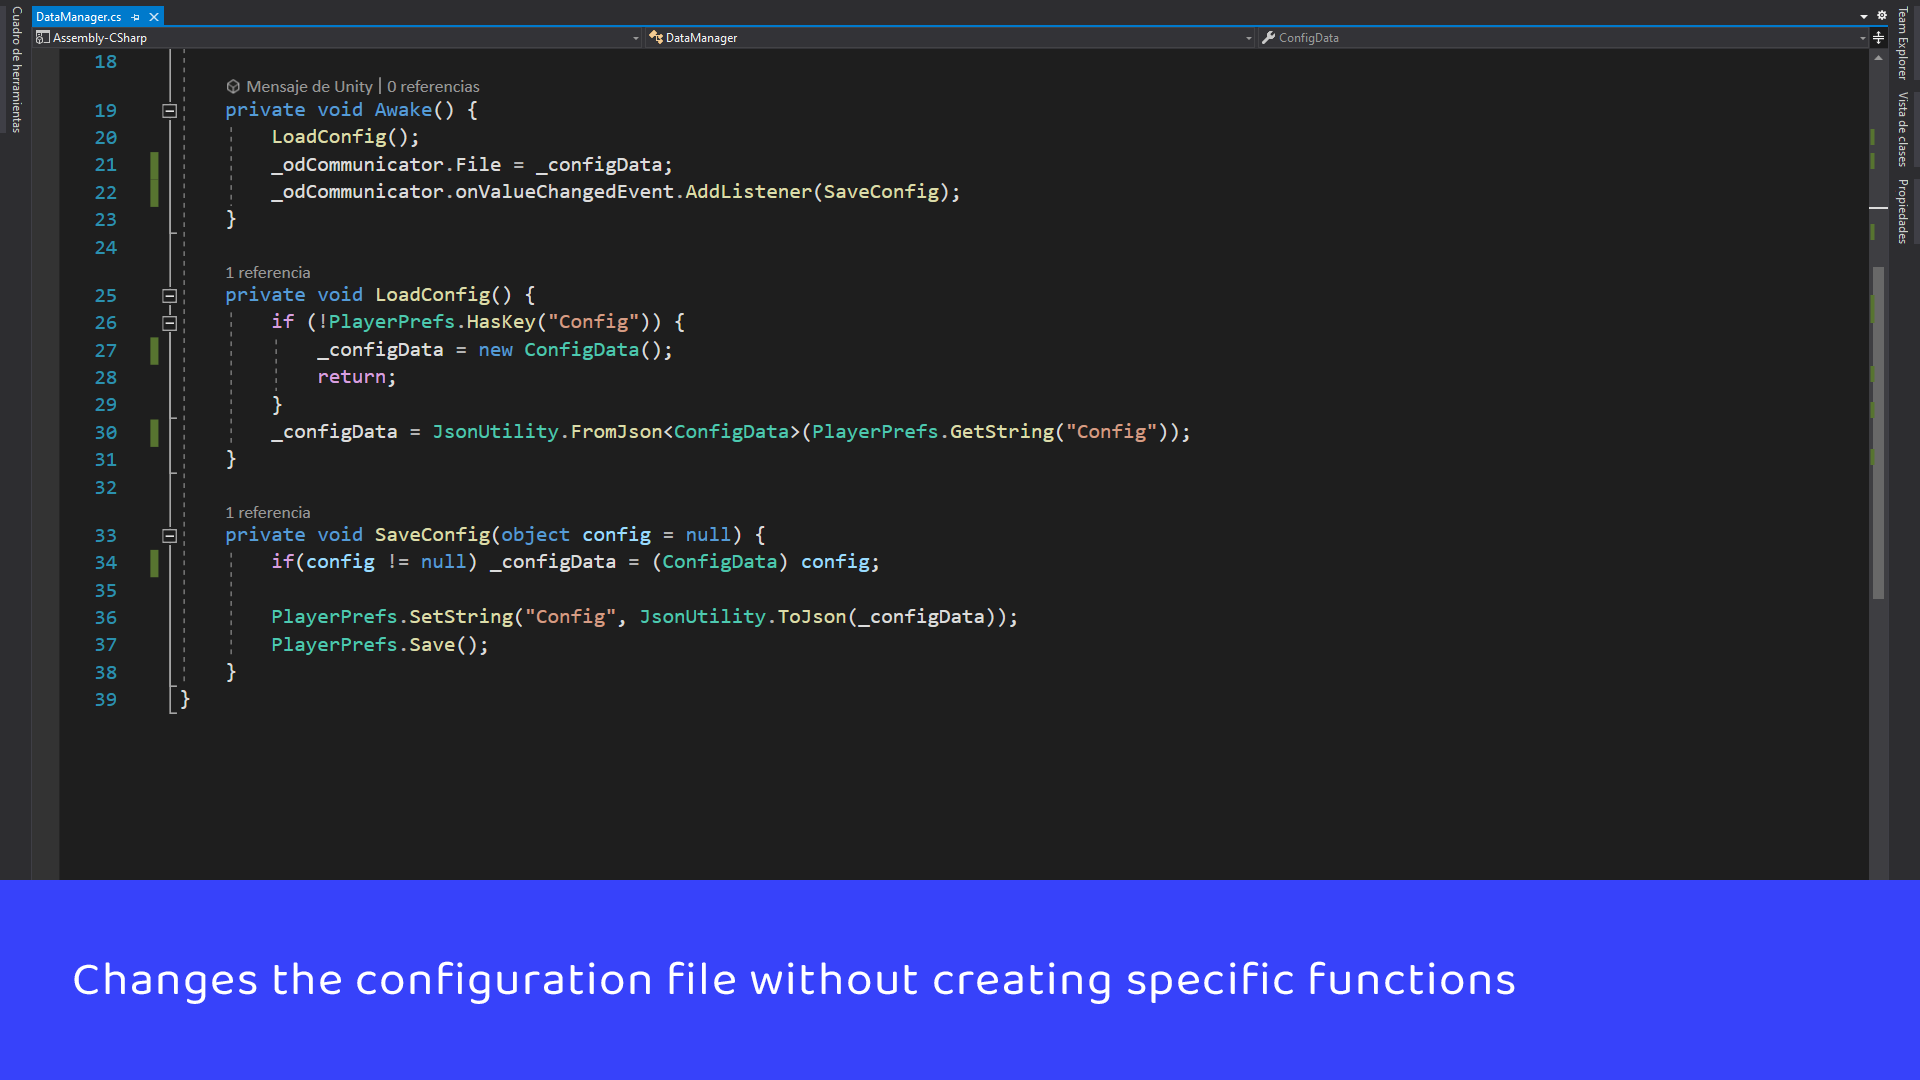 Changes the configuration file without creating specific functions